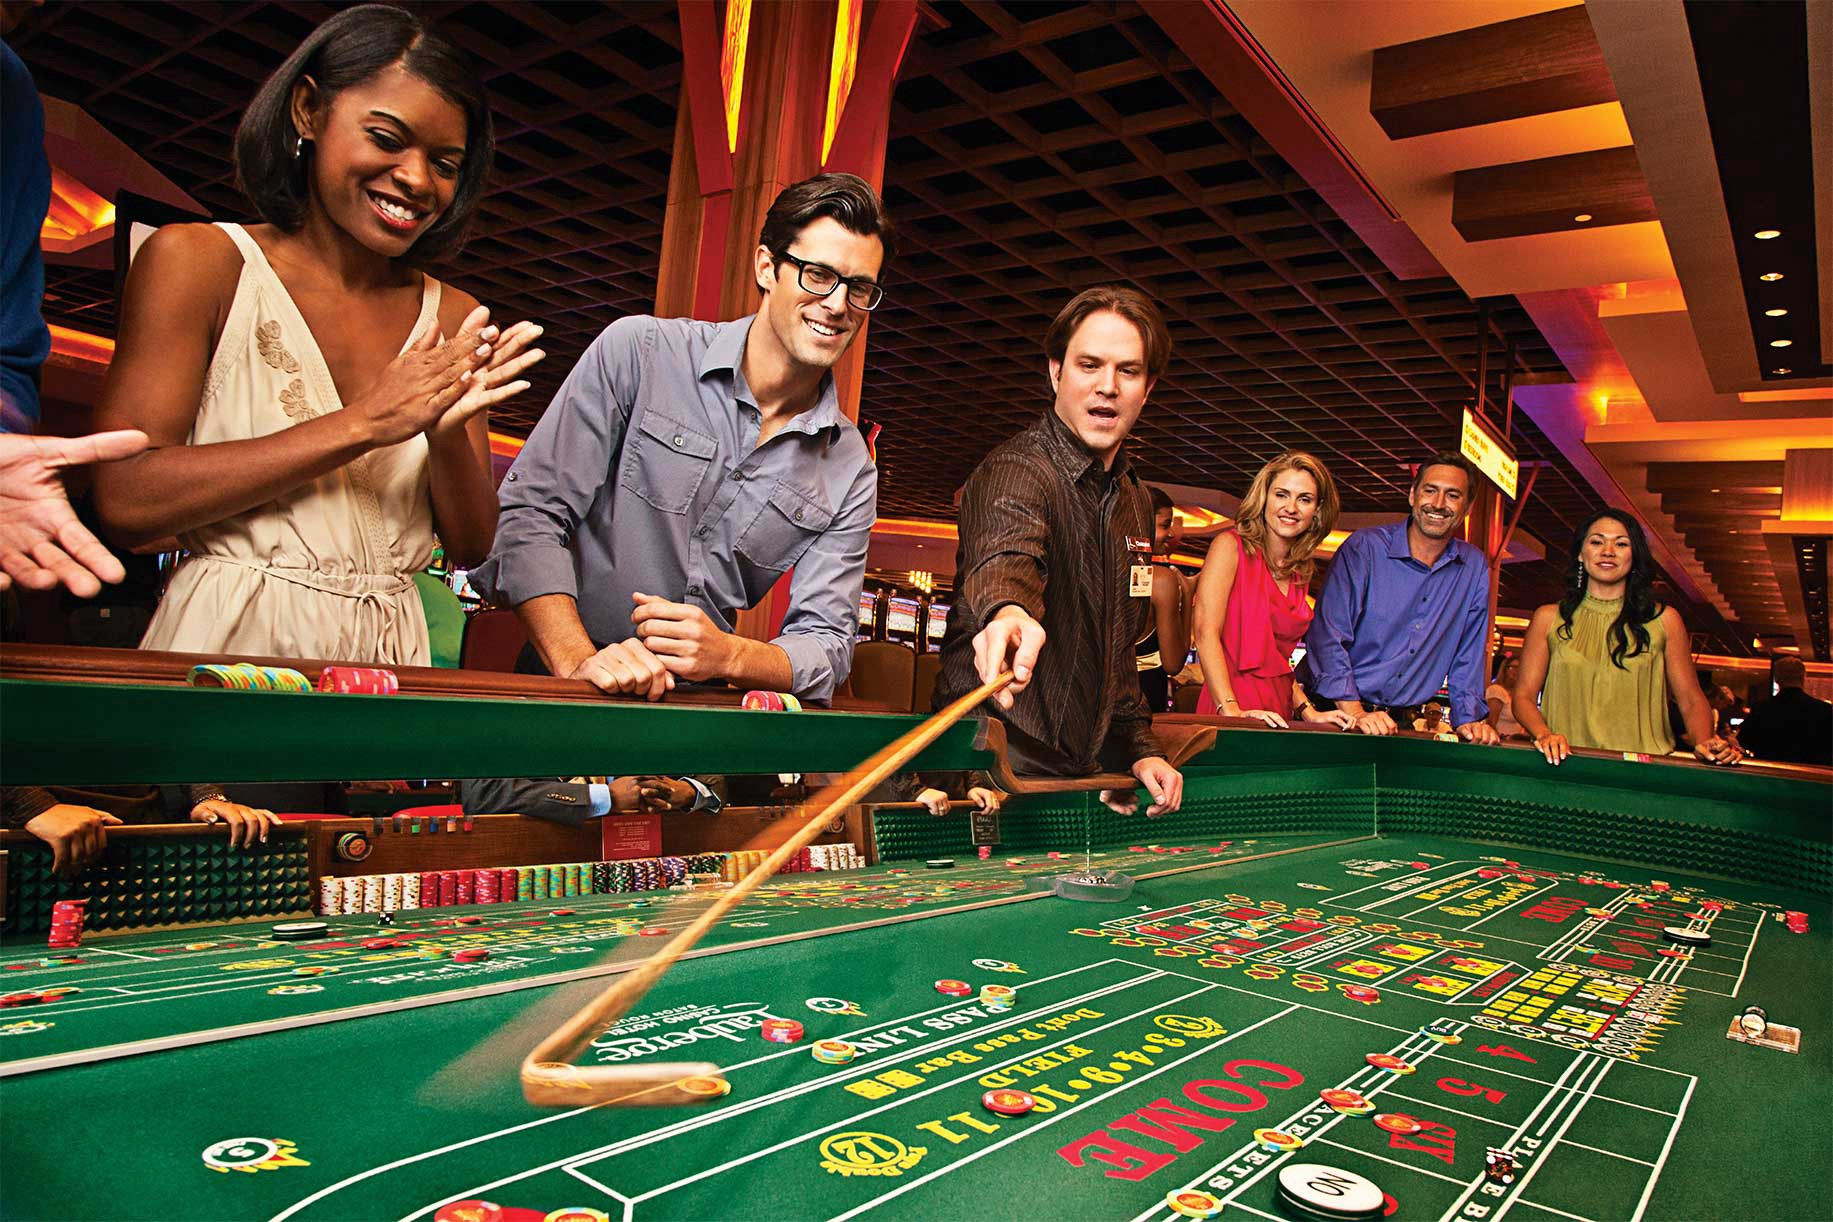 Gala Spins Spins The Goonies - New Online Casino Reviews